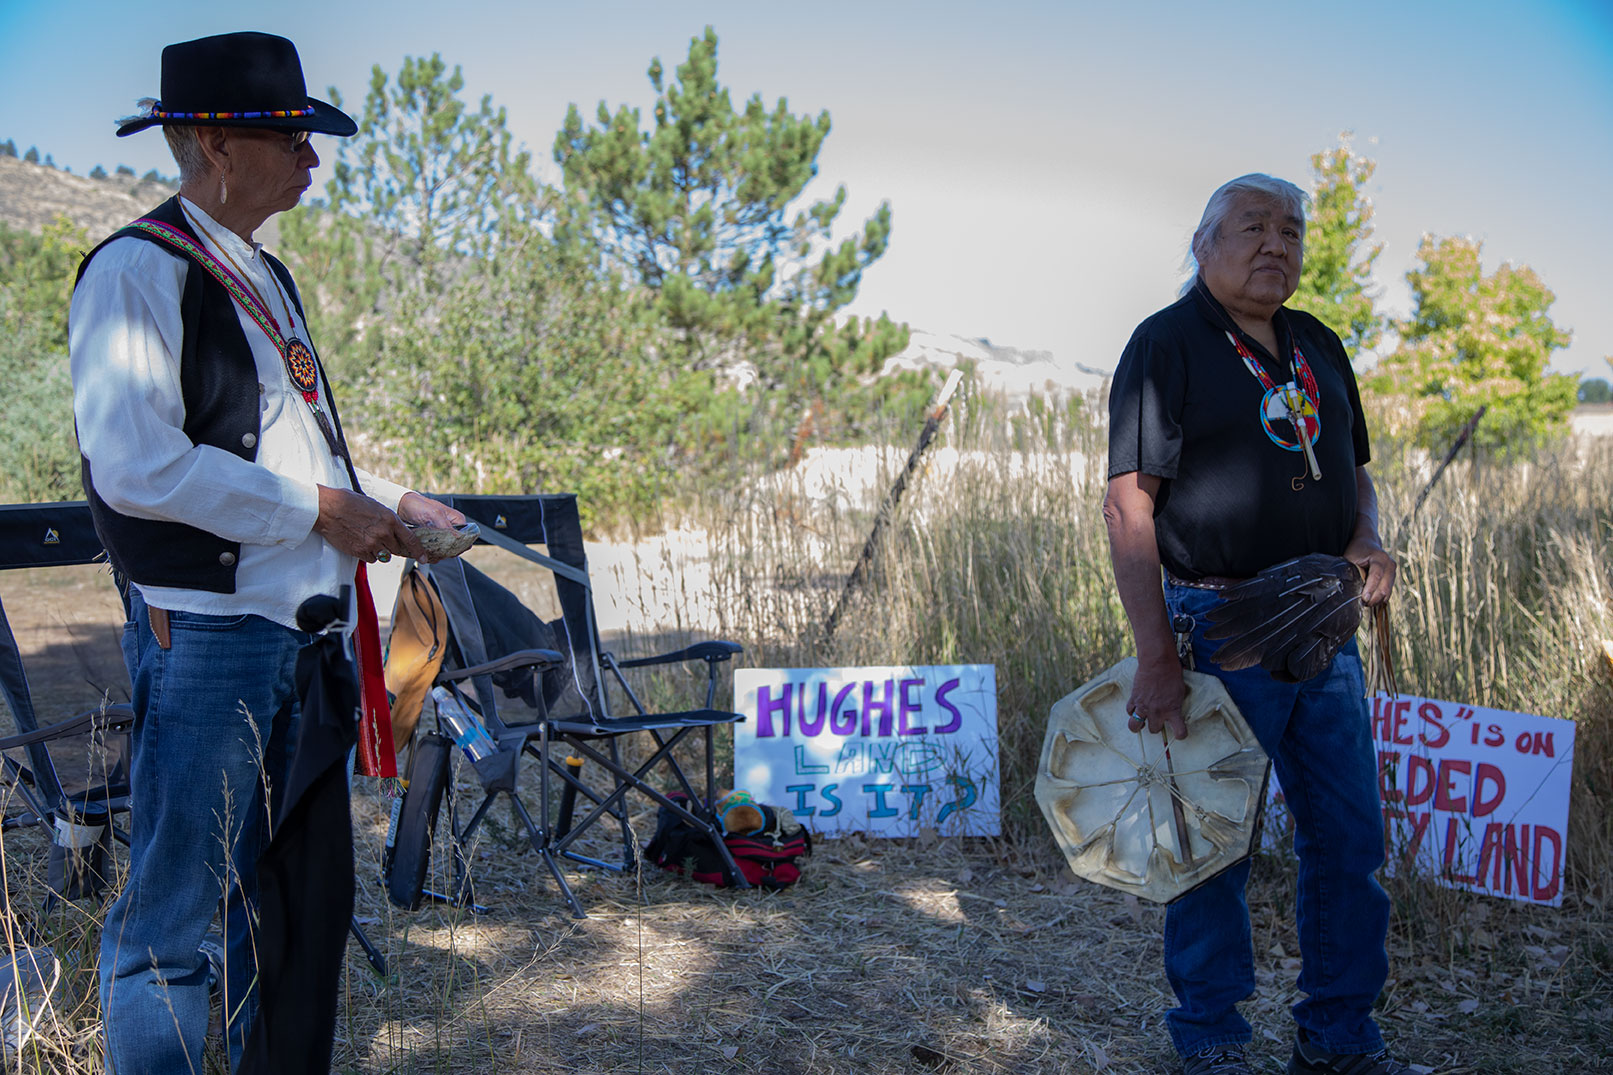 Two native men stand in the shade of the trees, talking to a group of people.